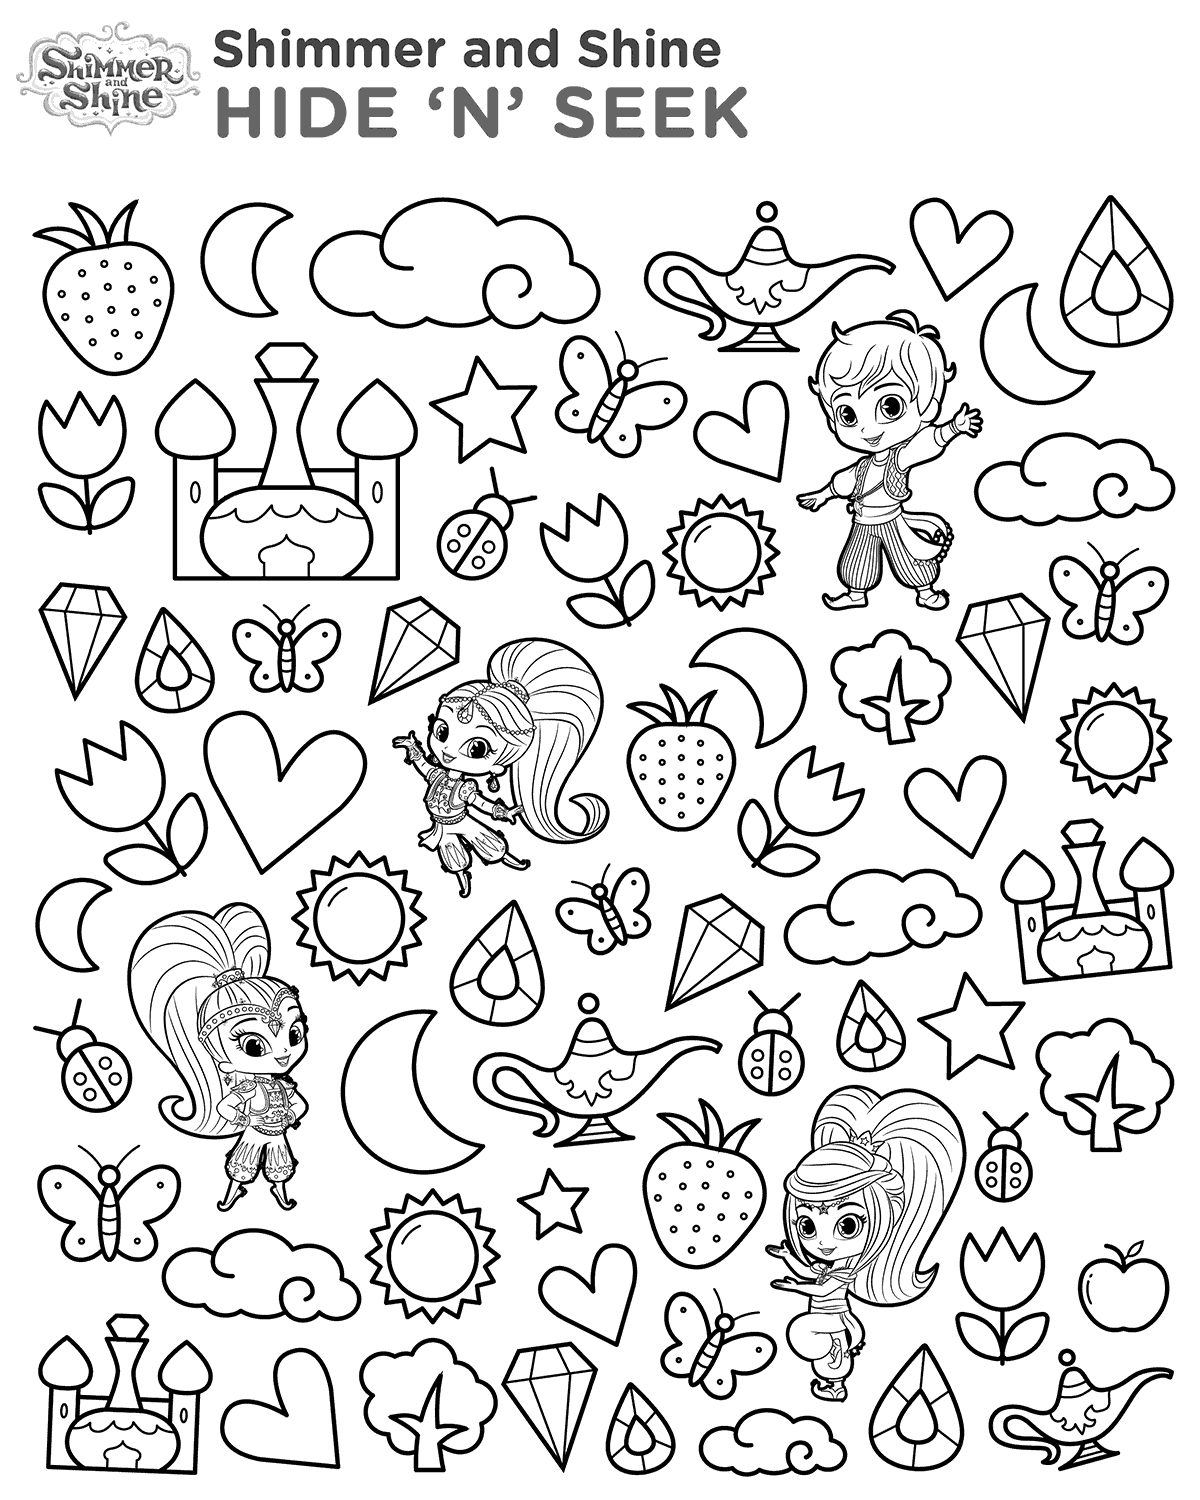 Shimmer and Shine Hide and Seek Coloring Pages